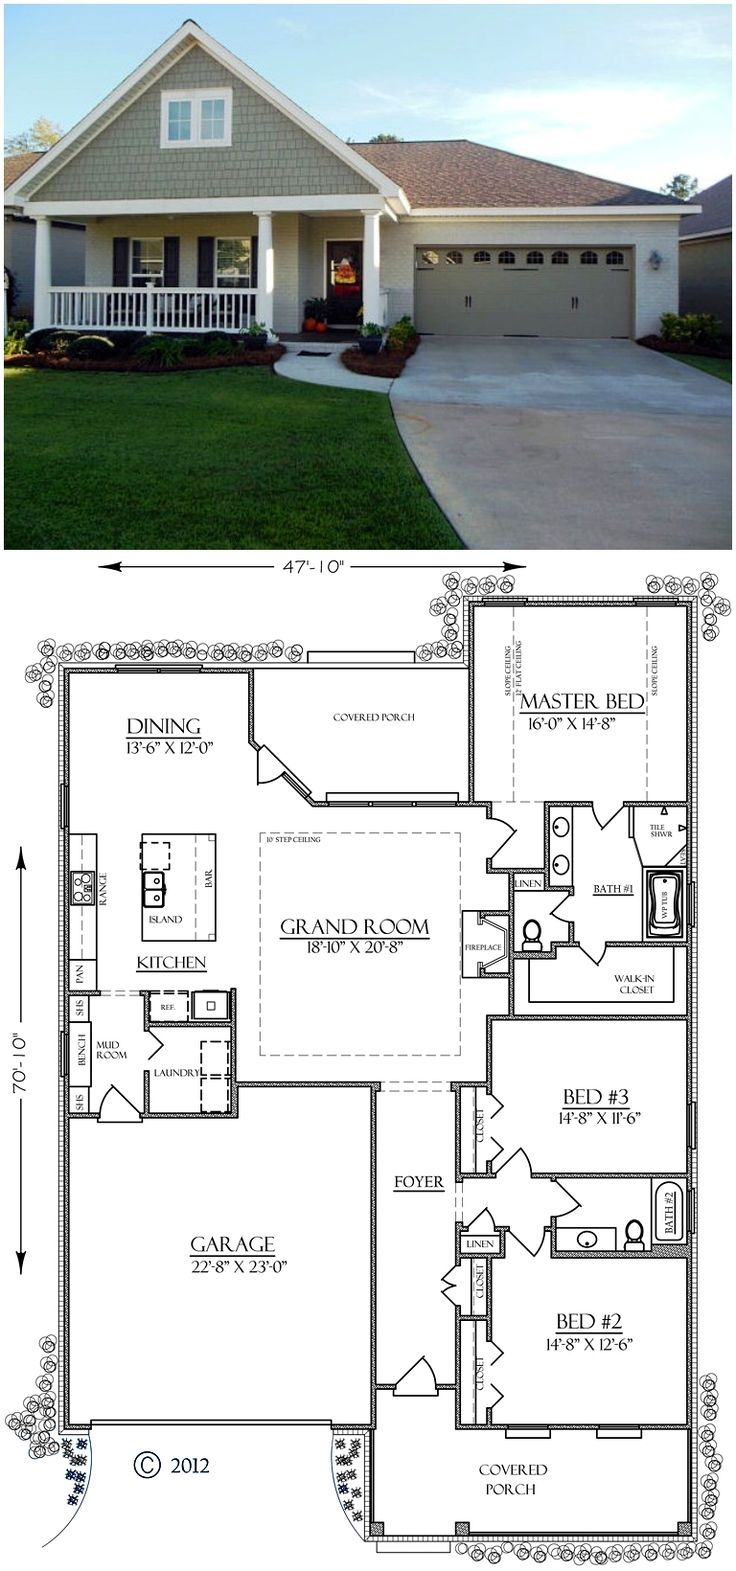 17 Best ideas about One Level House Plans on Pinterest One floor